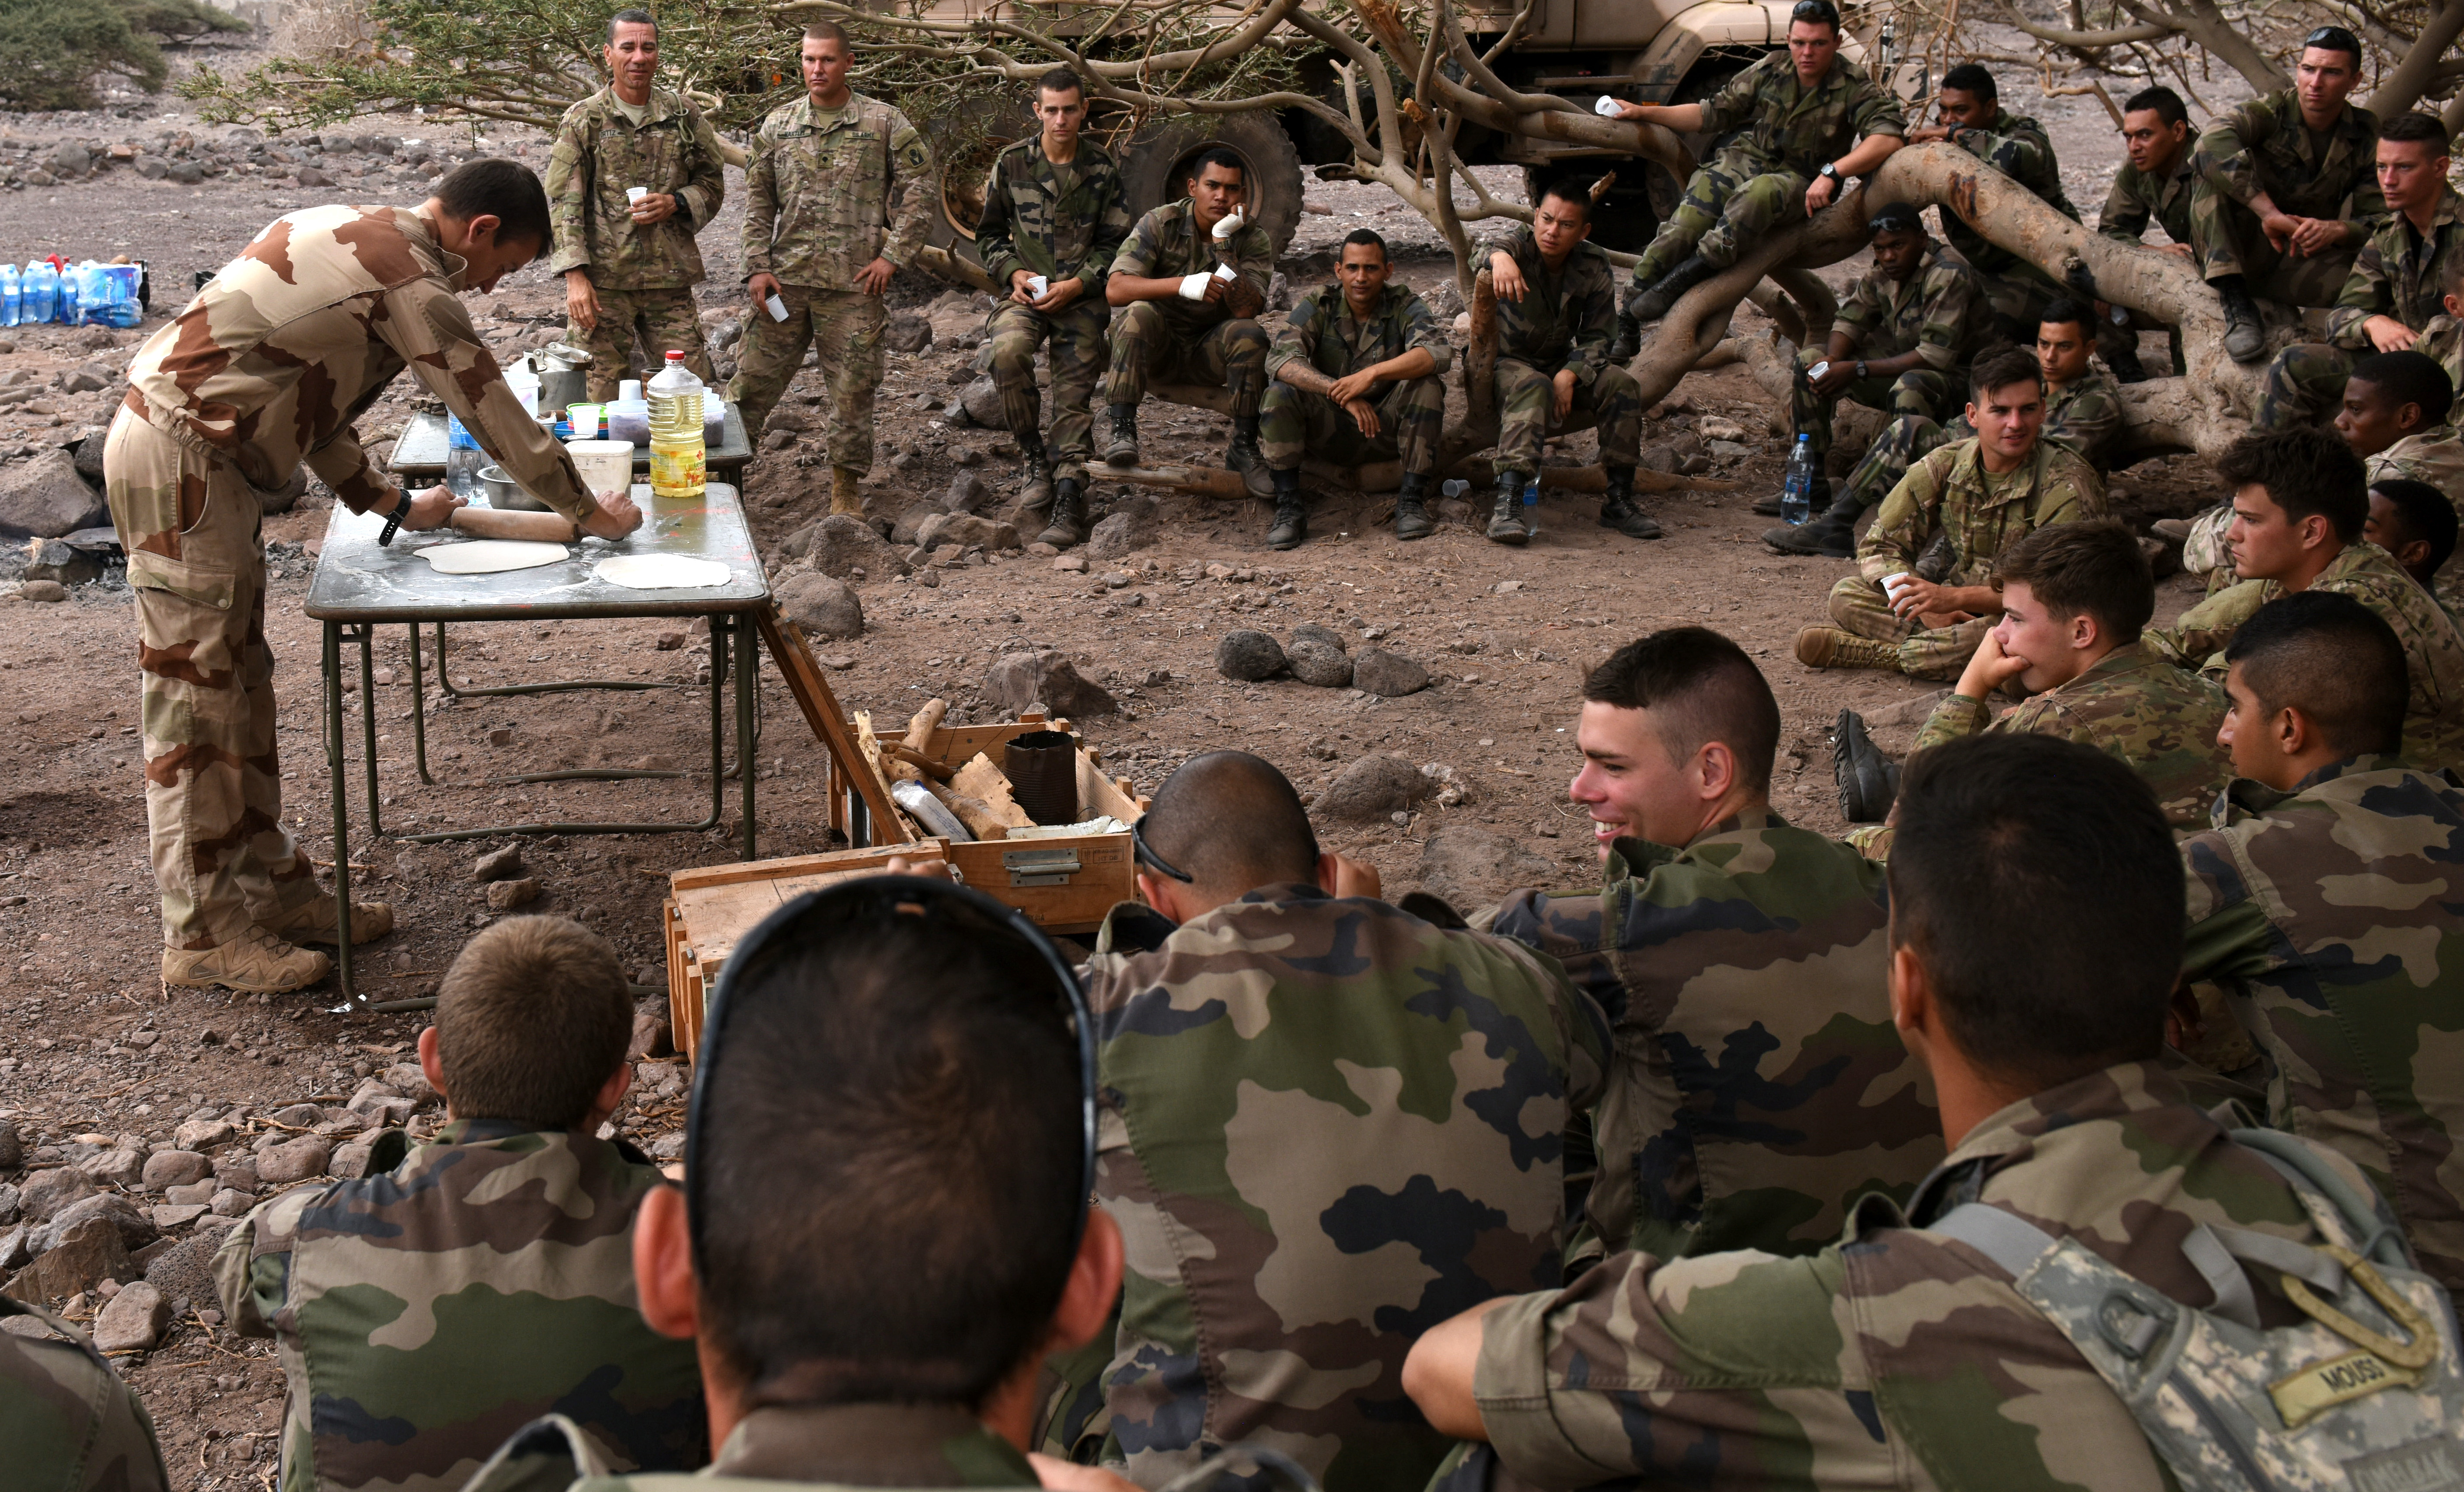 A French army survival instructor teaches French and U.S. soldiers how to make flatbread during a French Desert Survival Course near Arta Beach, Djibouti, Jan. 13, 2016.  Trainees learned how to use the resources available in a desert-like environment to prepare food and survive.  (U.S. Air Force photo by Staff Sgt. Kate Thornton)